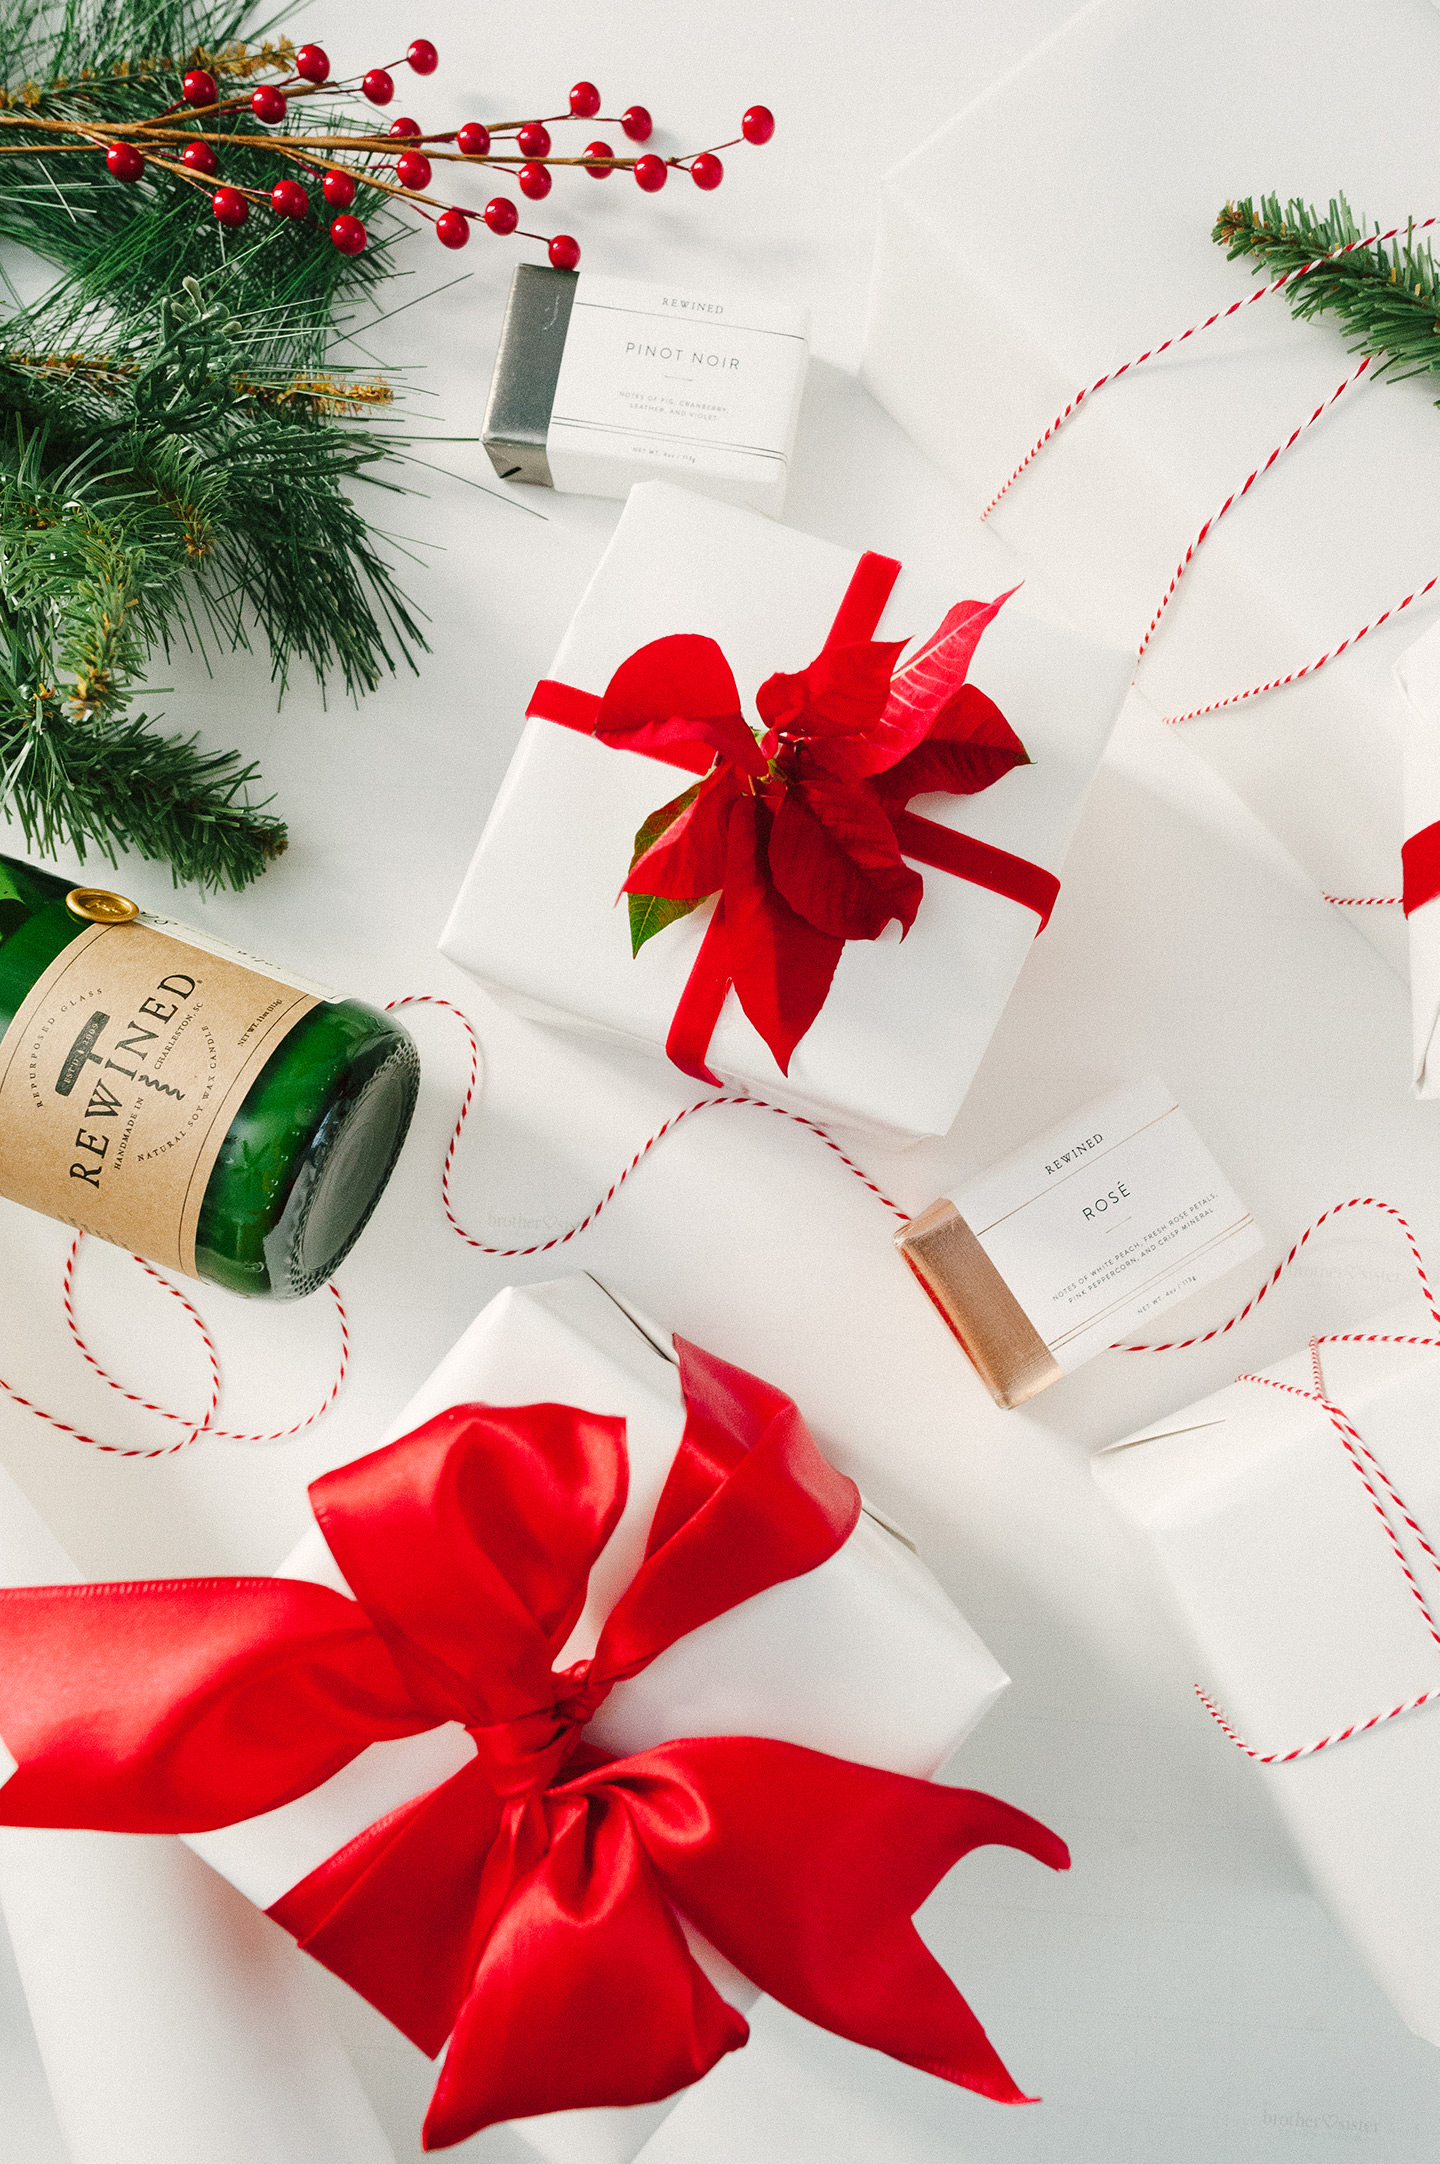 11 Ways to Embellish Holiday Gifts